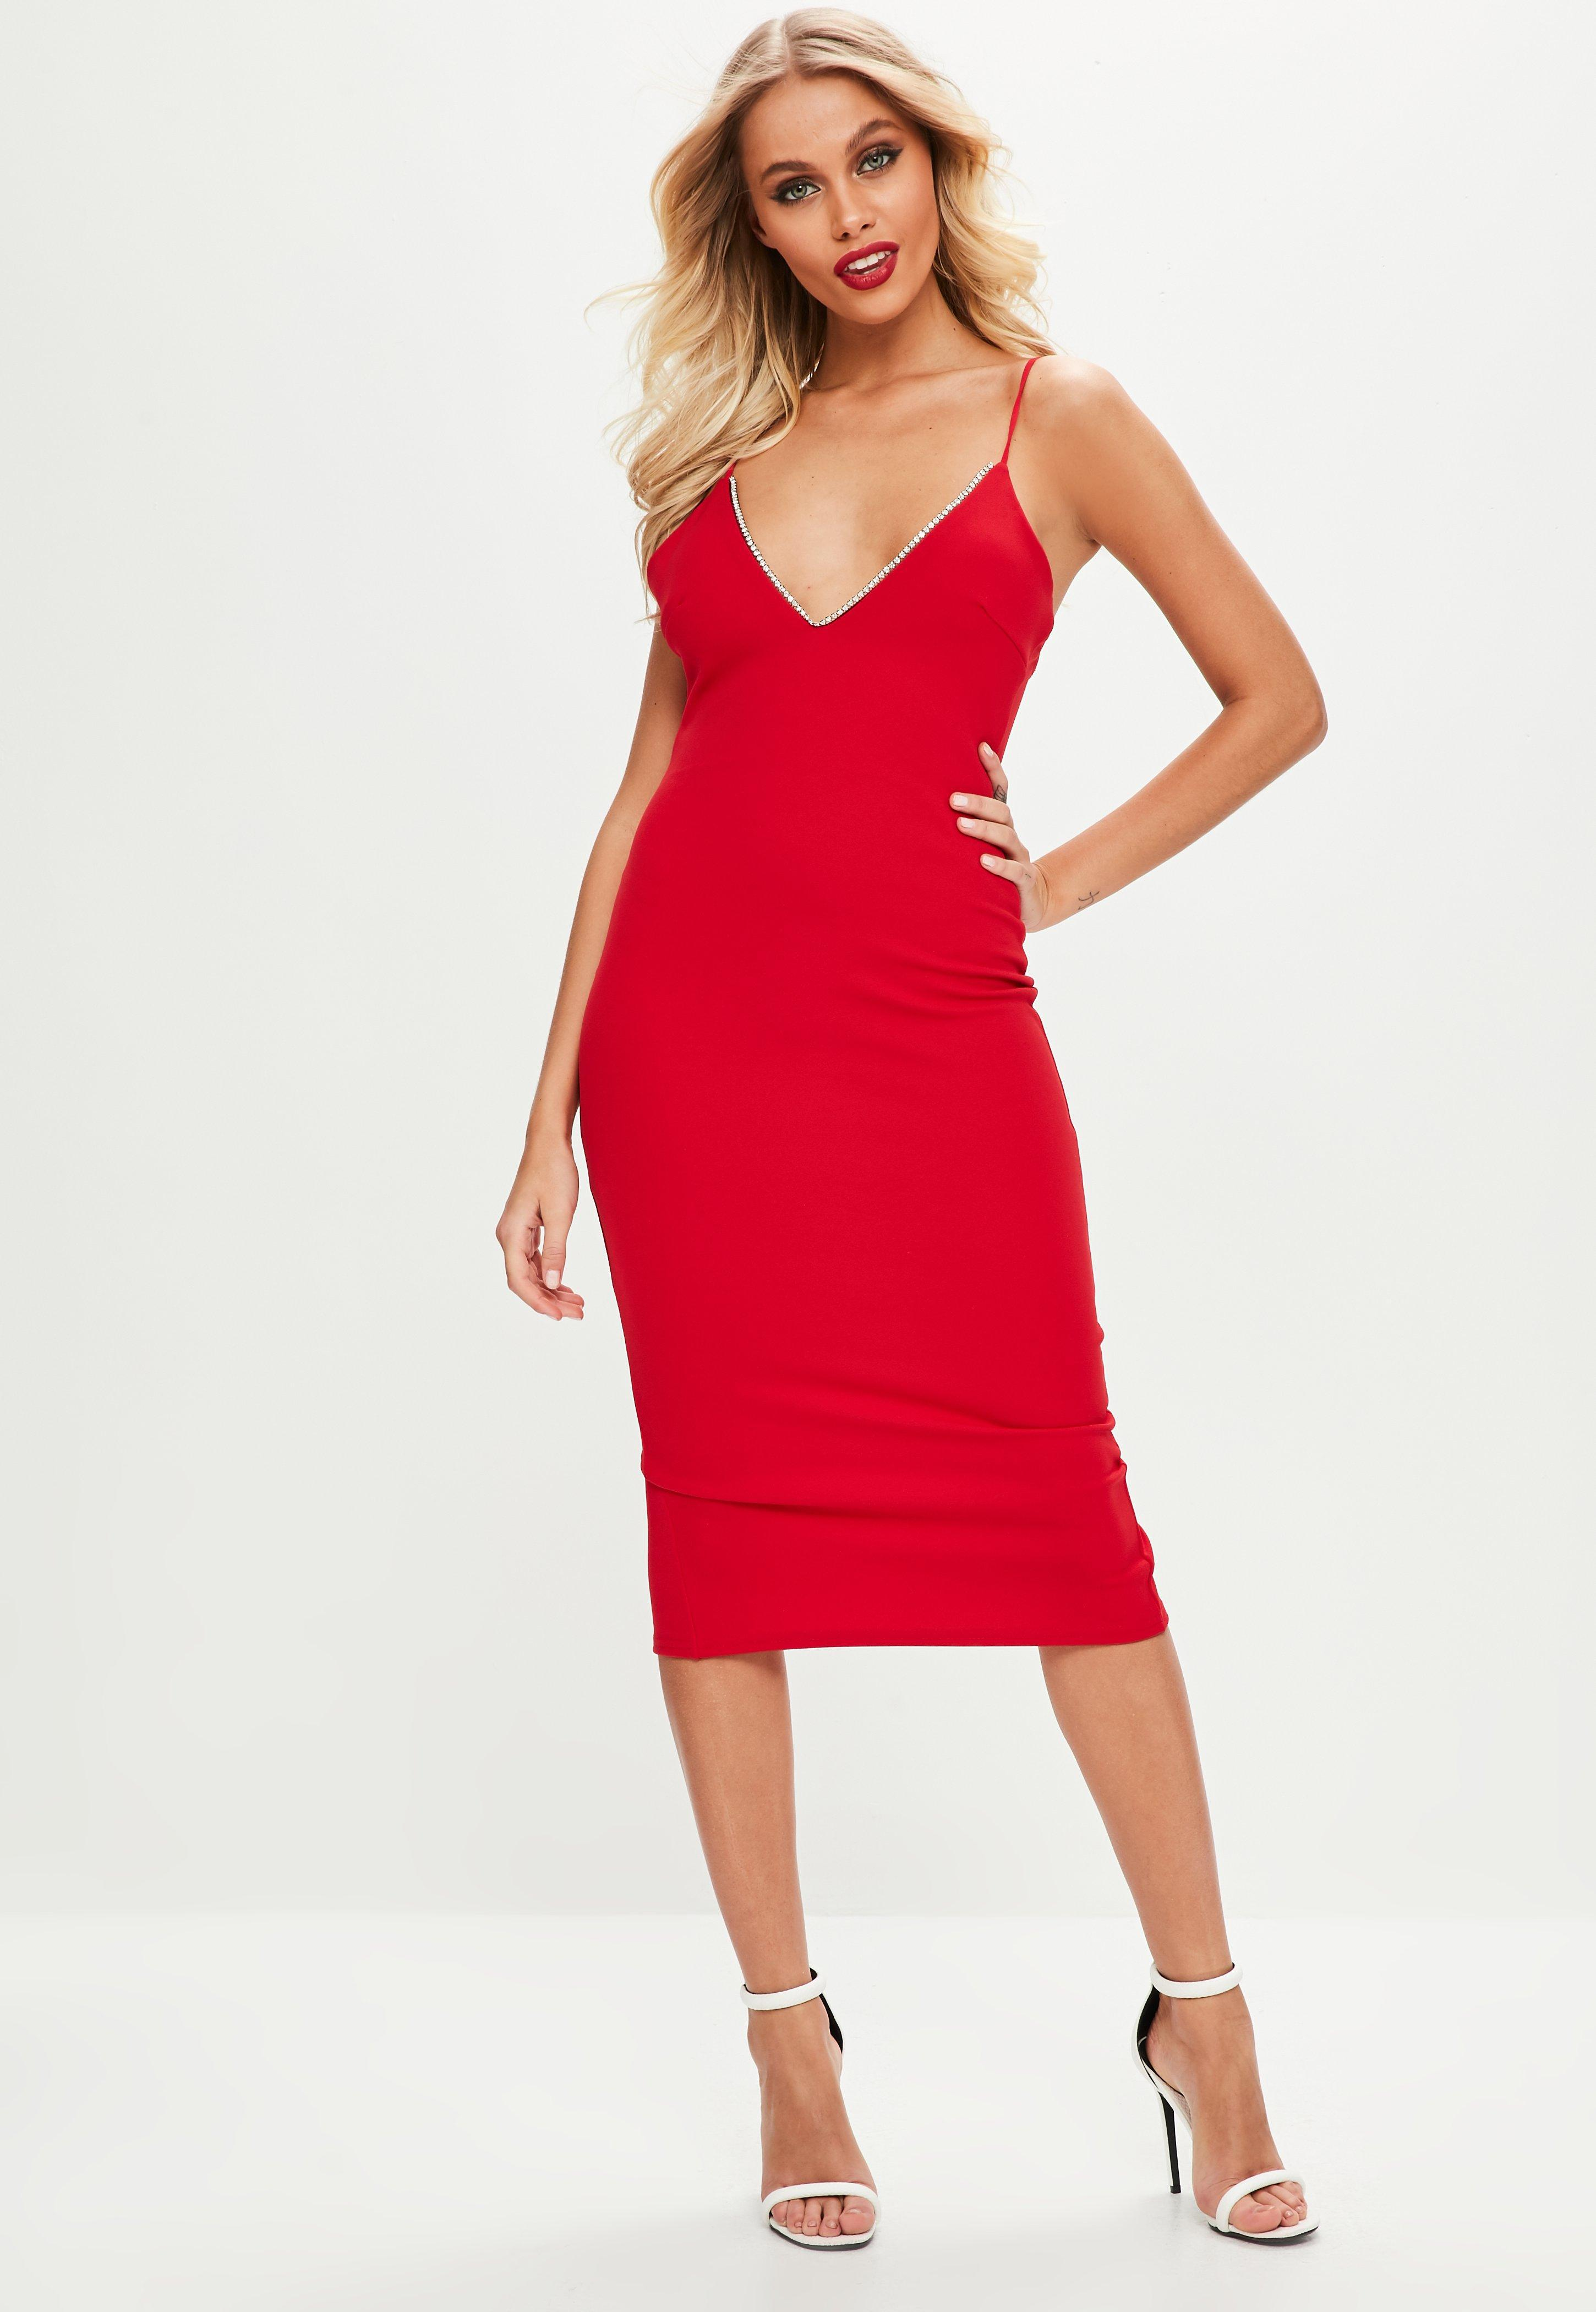 Missguided Red Scuba Diamante Plunge Midi Dress in Red - Lyst fbf8c4a3d